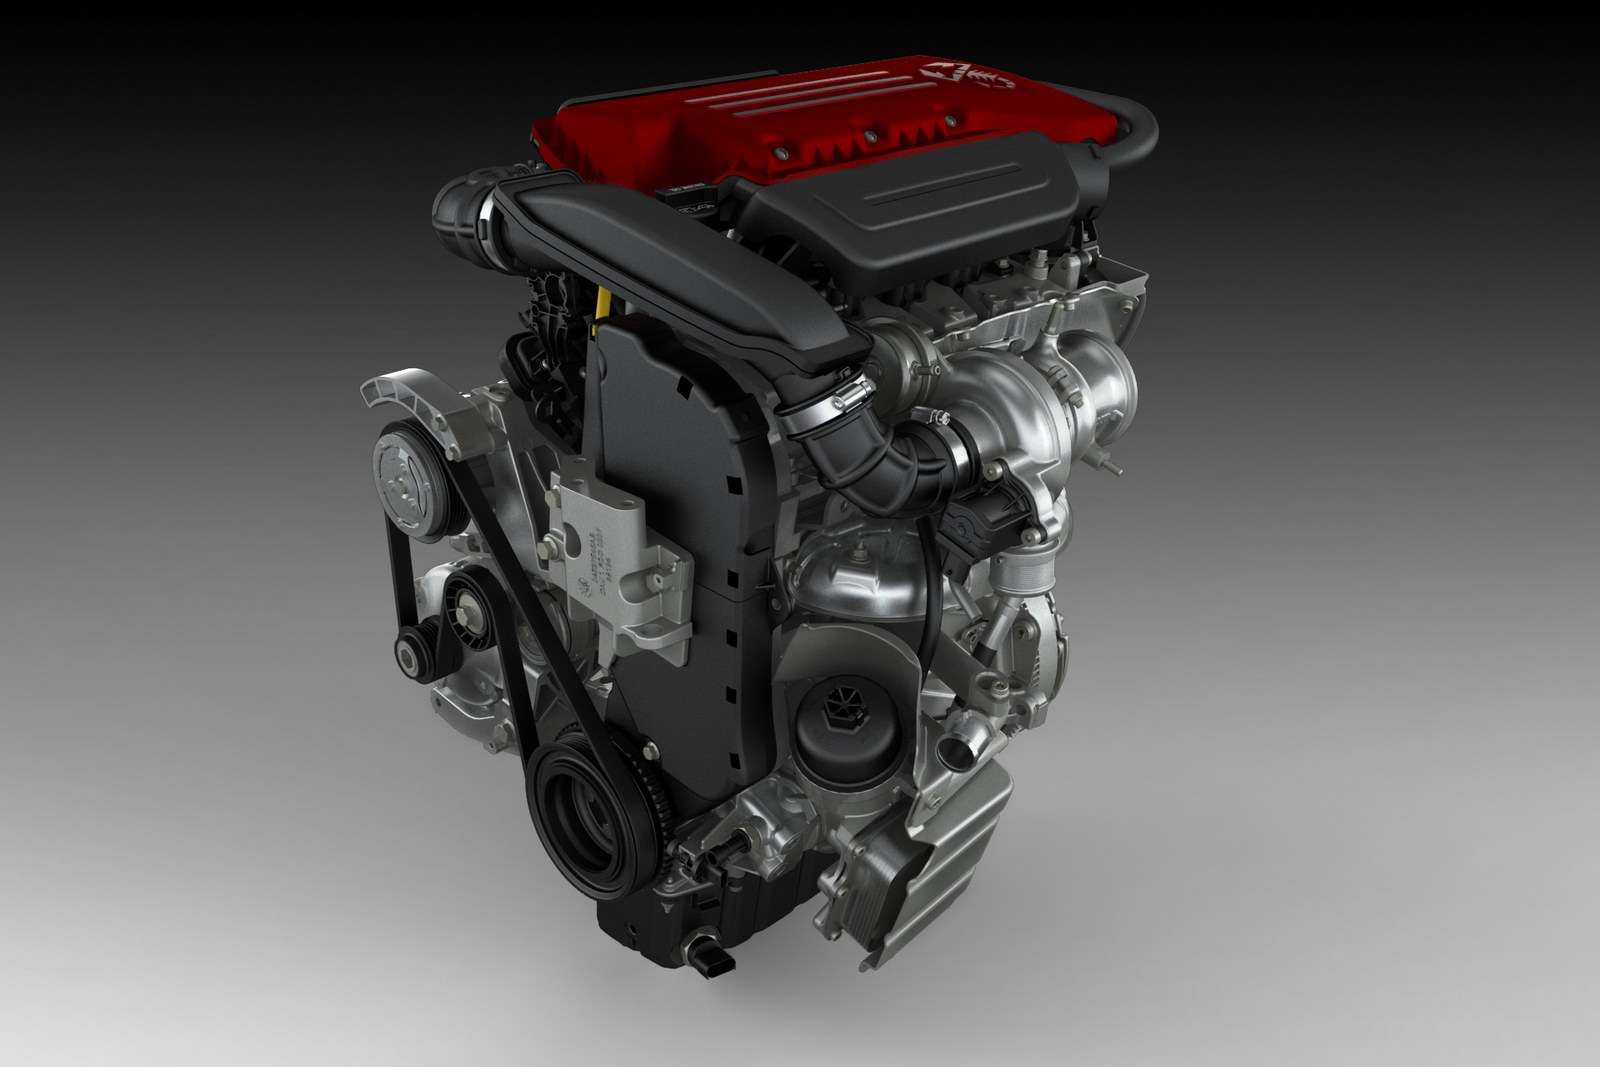 fiat racing abarth price specs pictures cars trends news size pogea engine digital performance